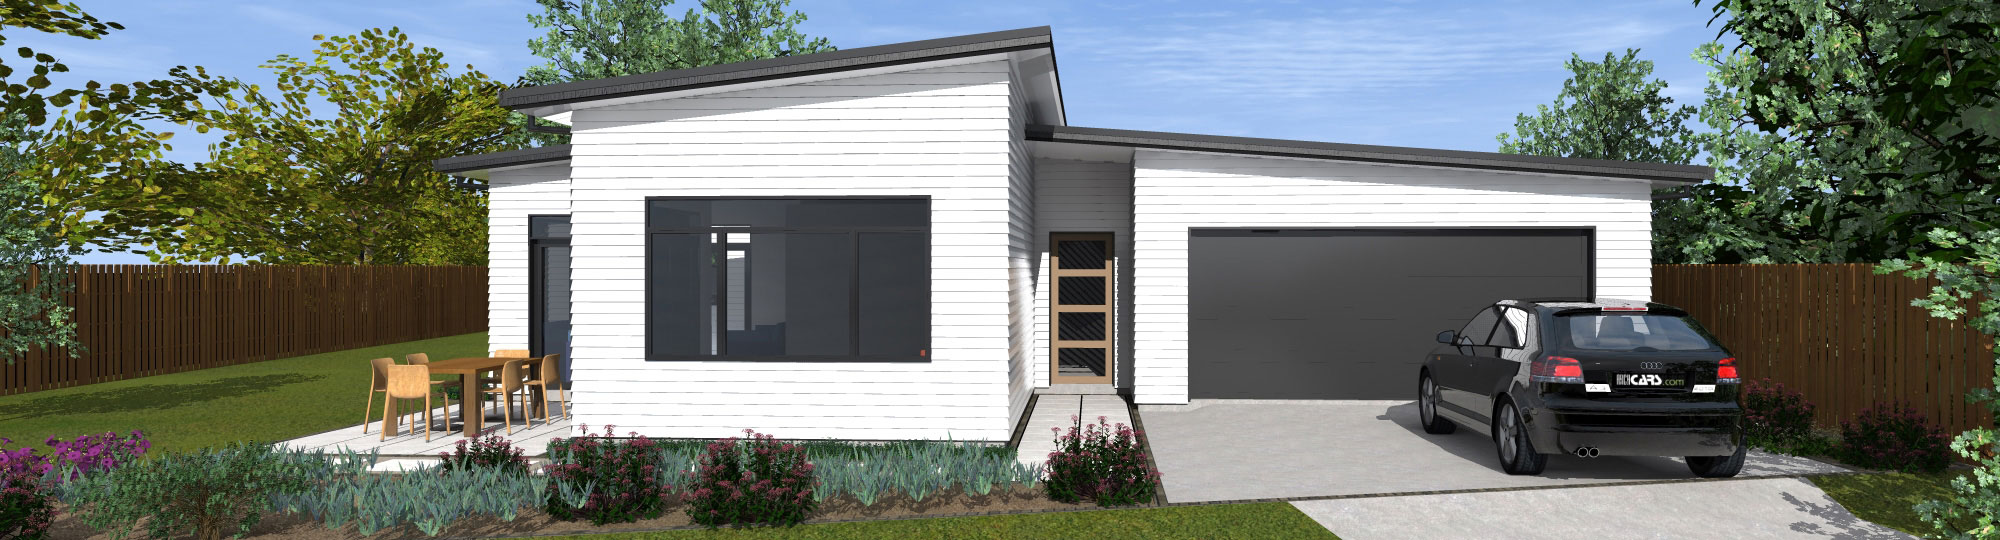 Architecture Design Nz wellington architect and draughtsman, lower hutt architect and